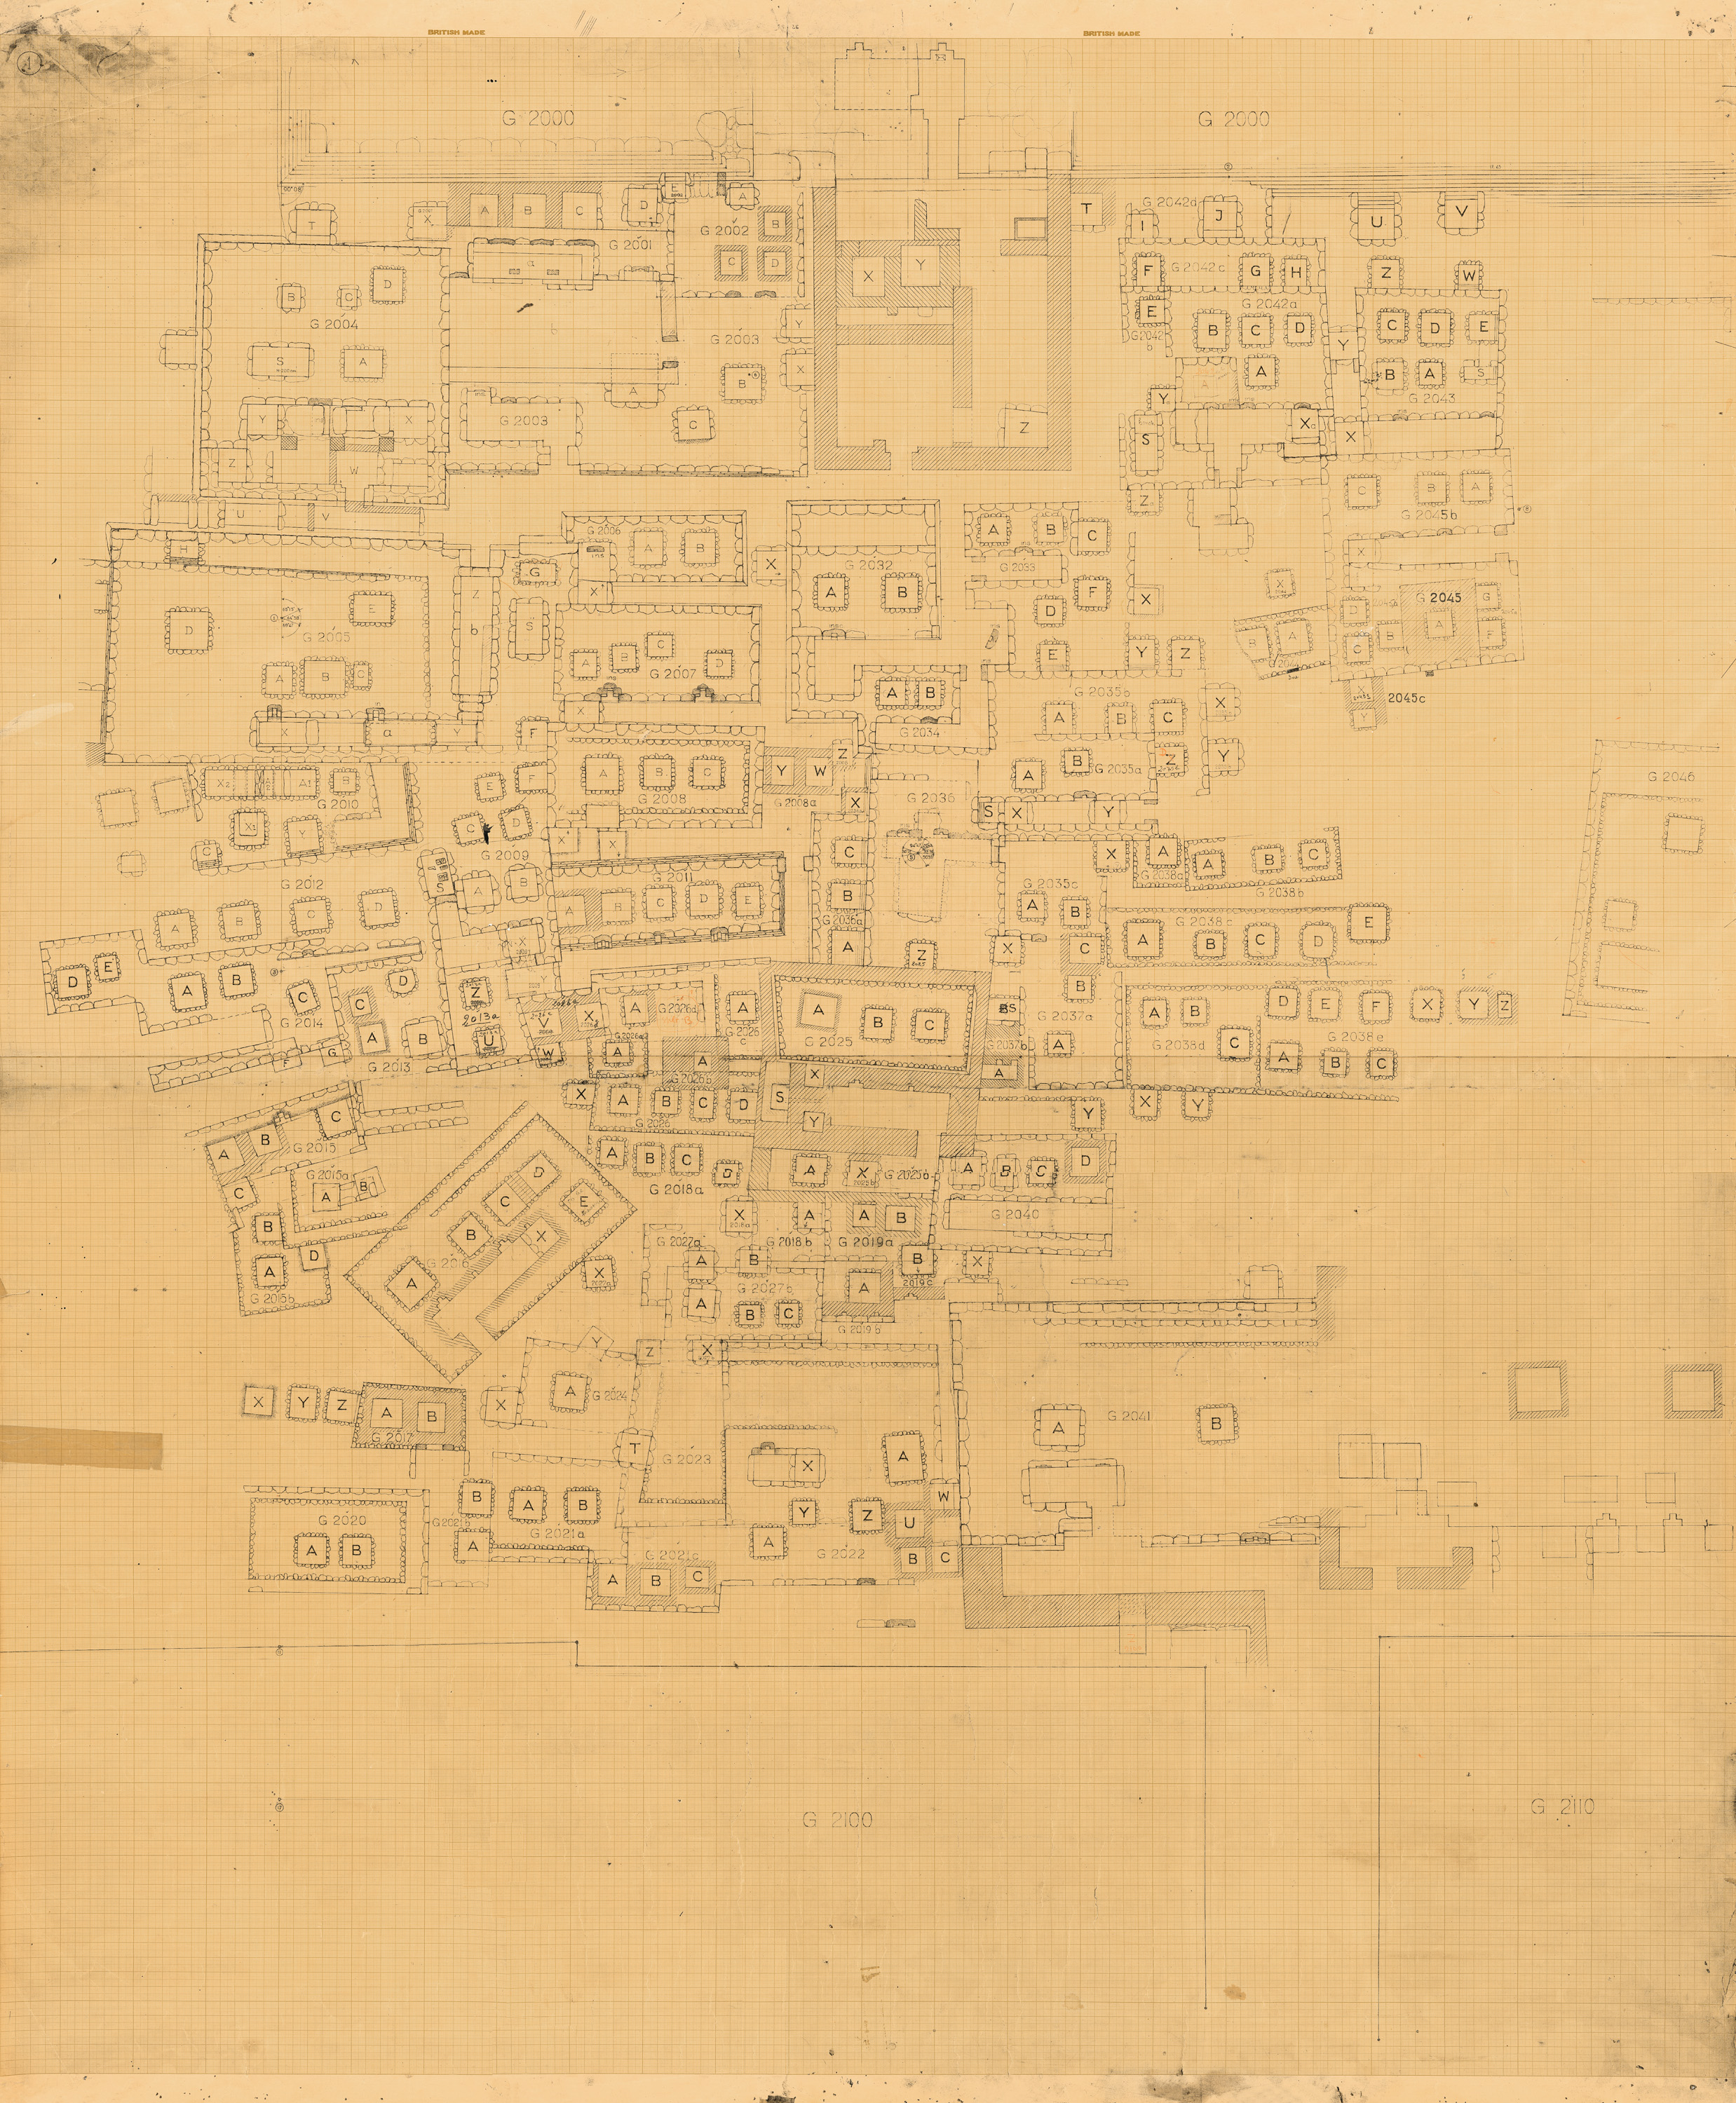 Maps and plans: Plan of Cemetery G 2000, W part